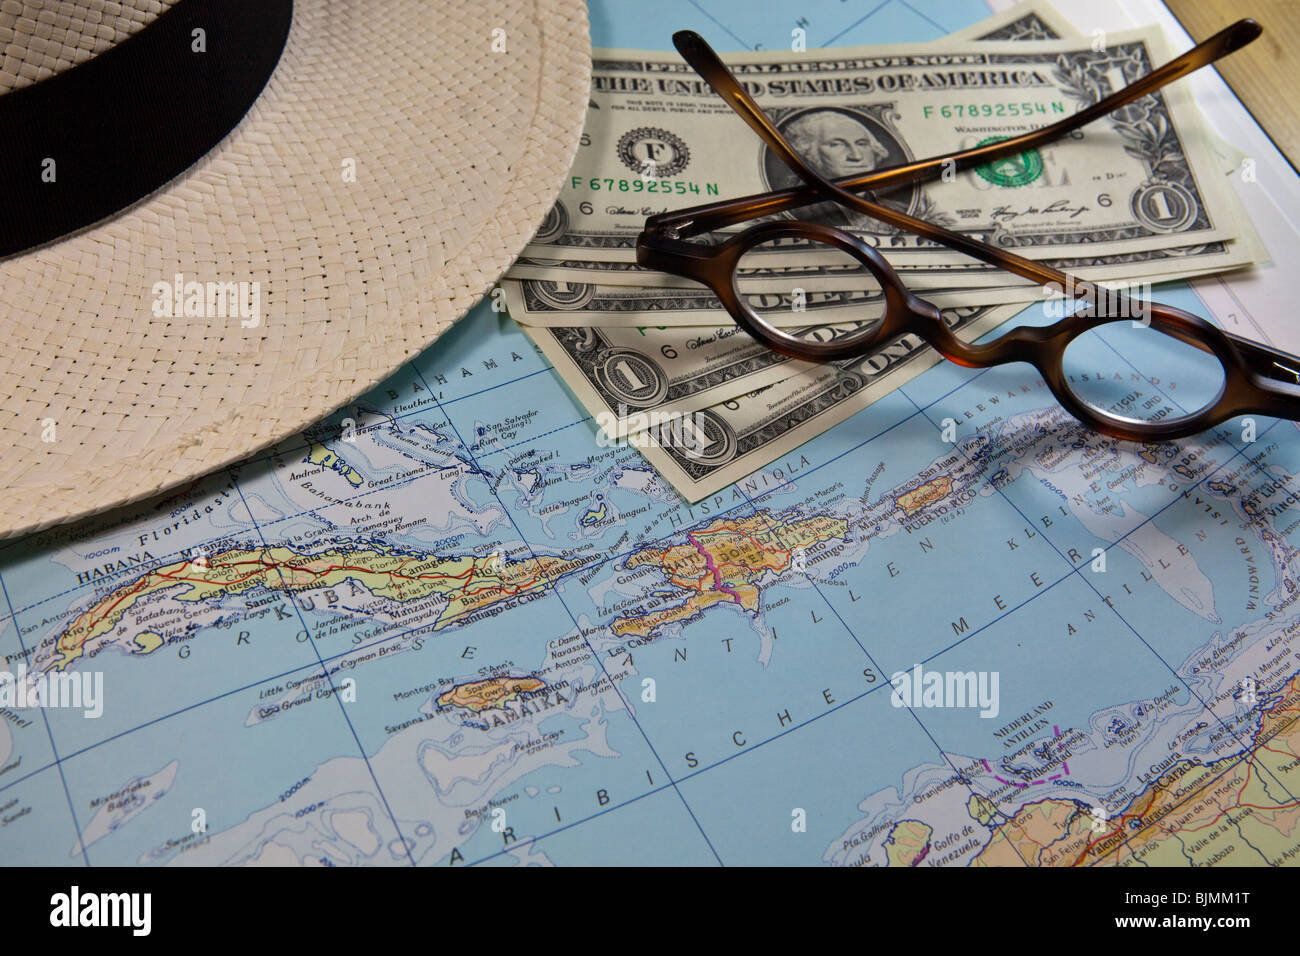 Planning a trip to the Caribbean, Cuba, historical reading glasses, U.S. Dollar - Stock Image